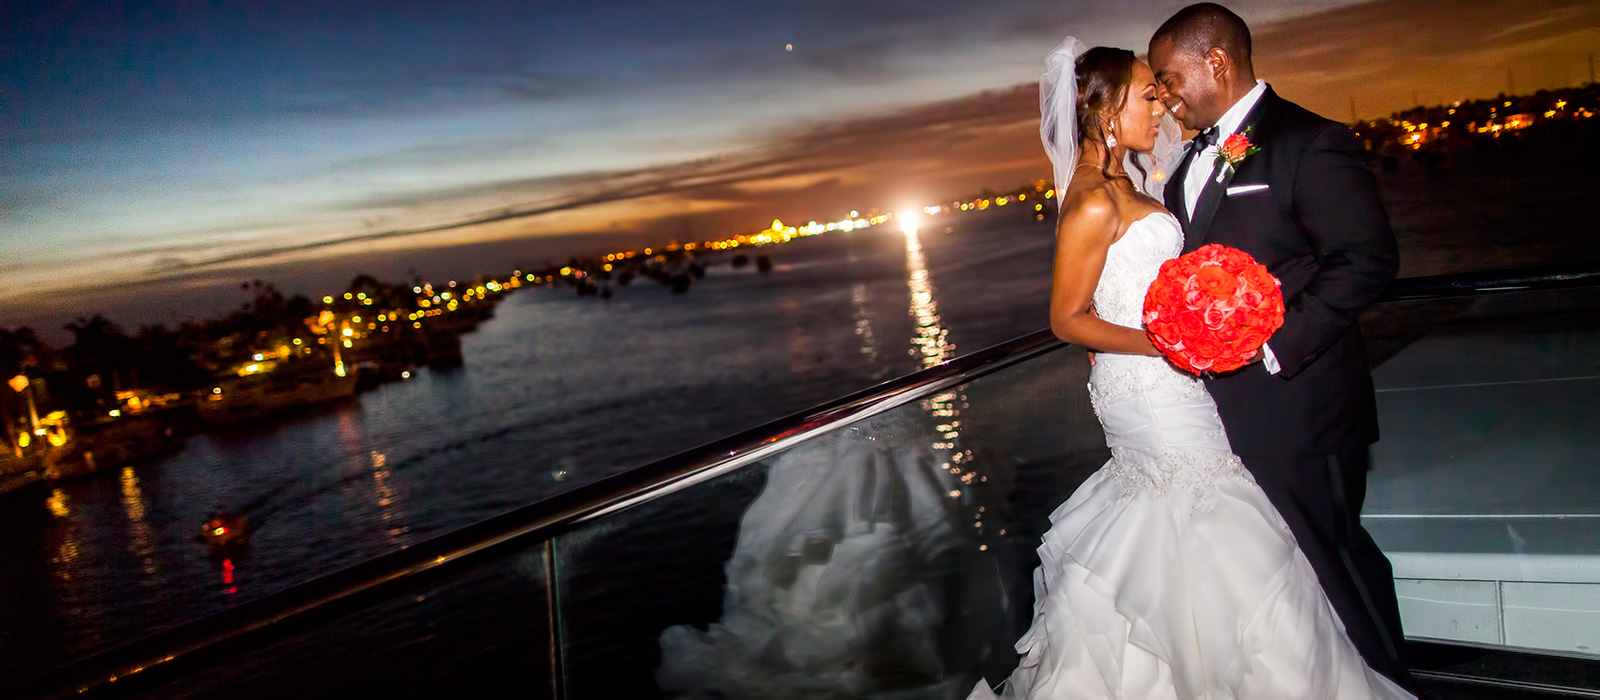 Wedding Reception On A Luxurious Yacht Cruising Newport Harbor